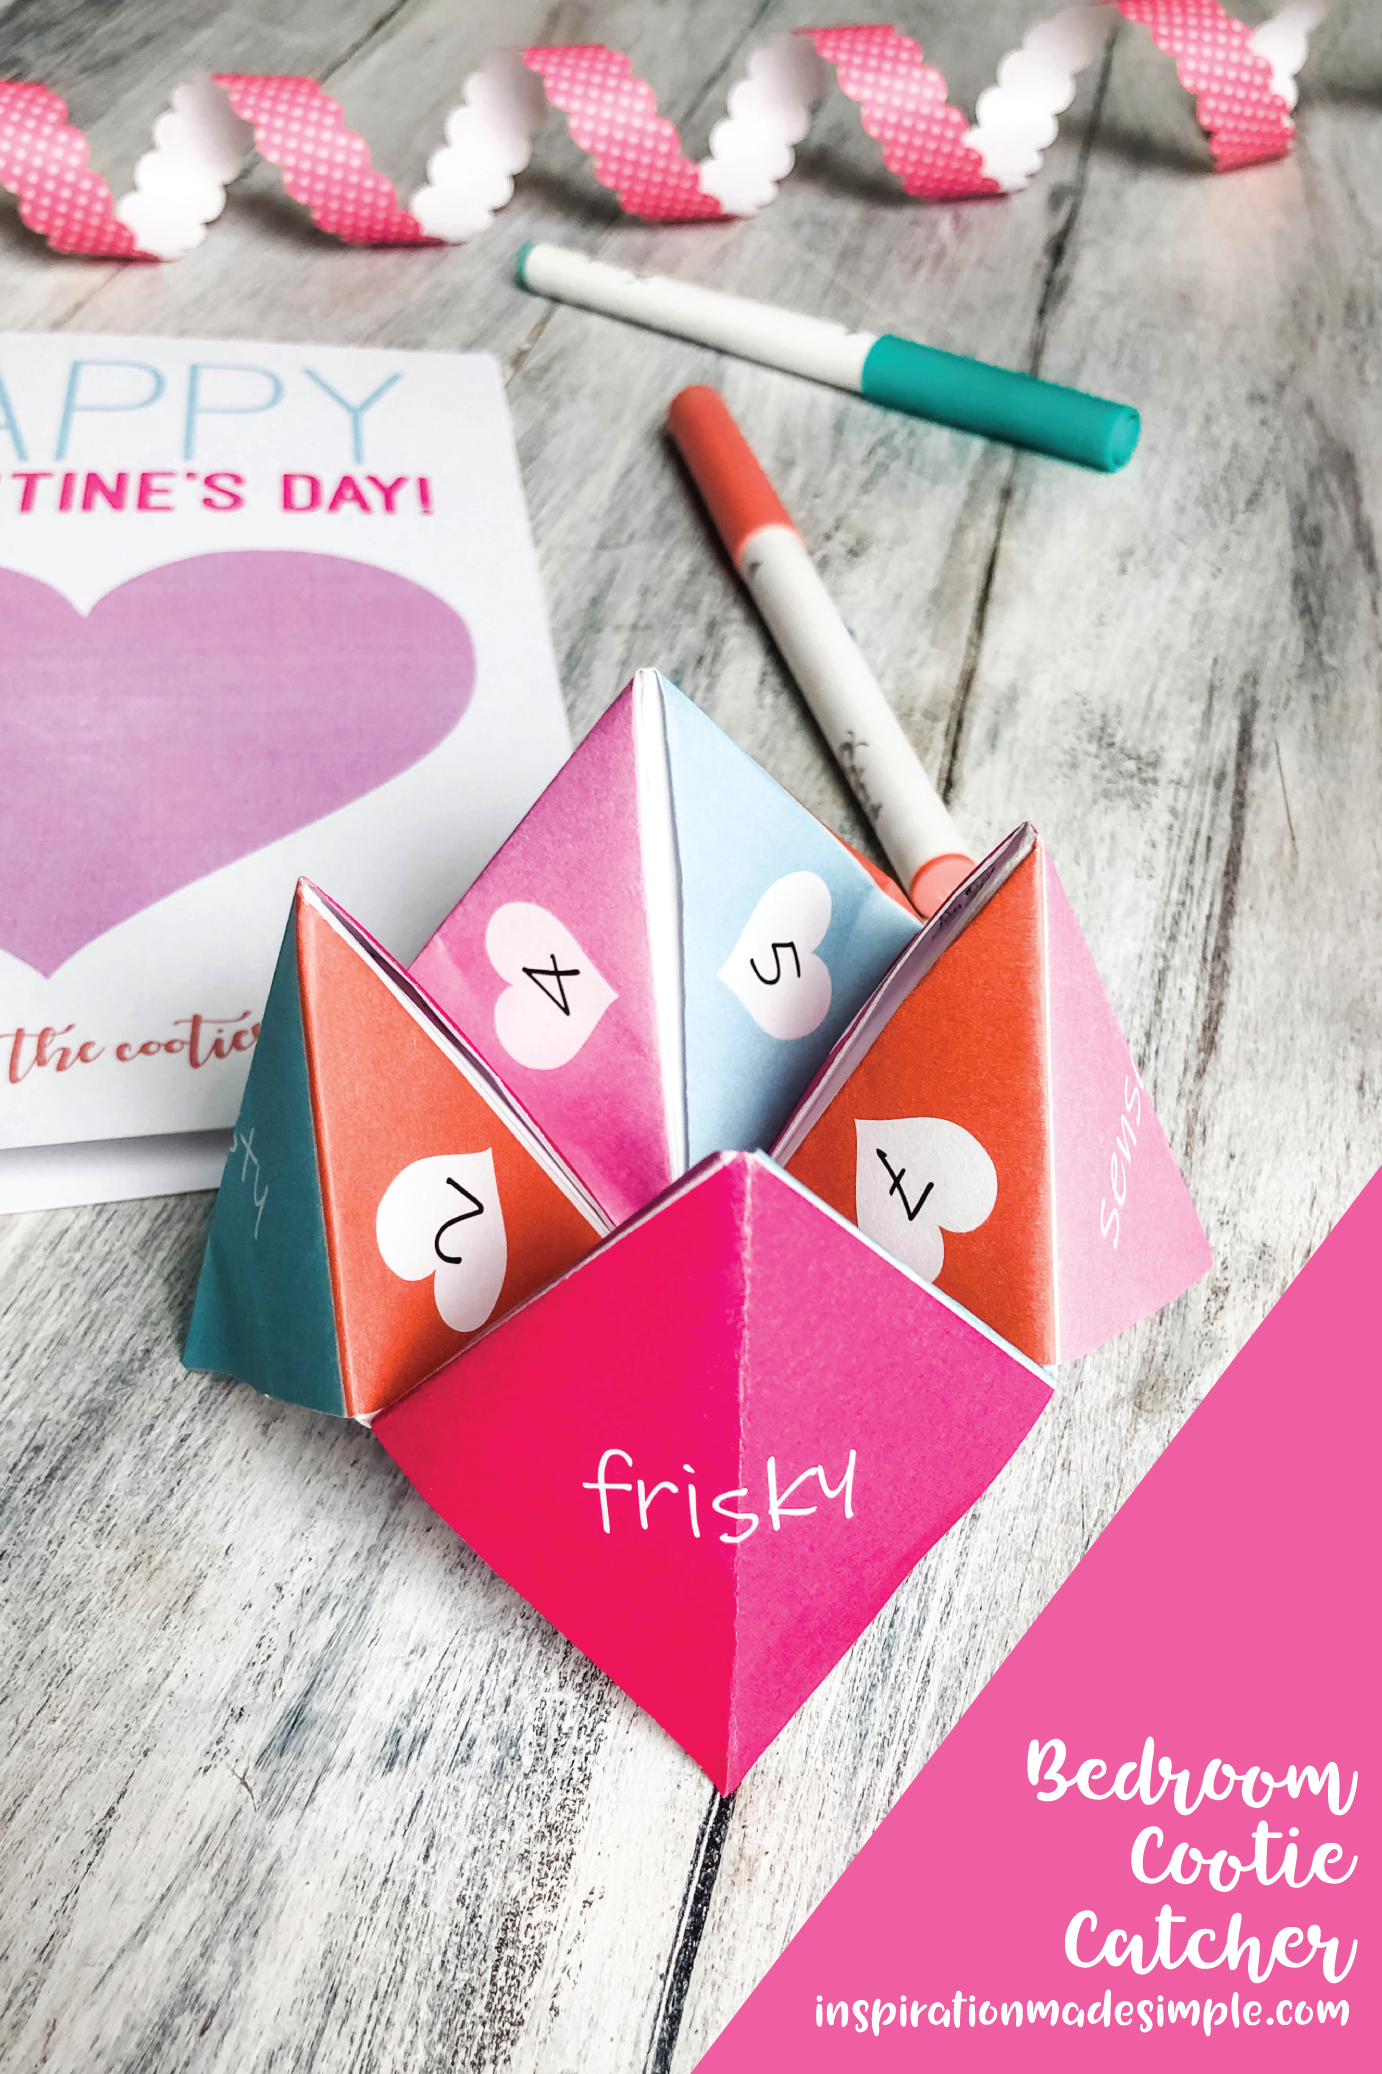 Printable Cootie Catcher Bedroom Game